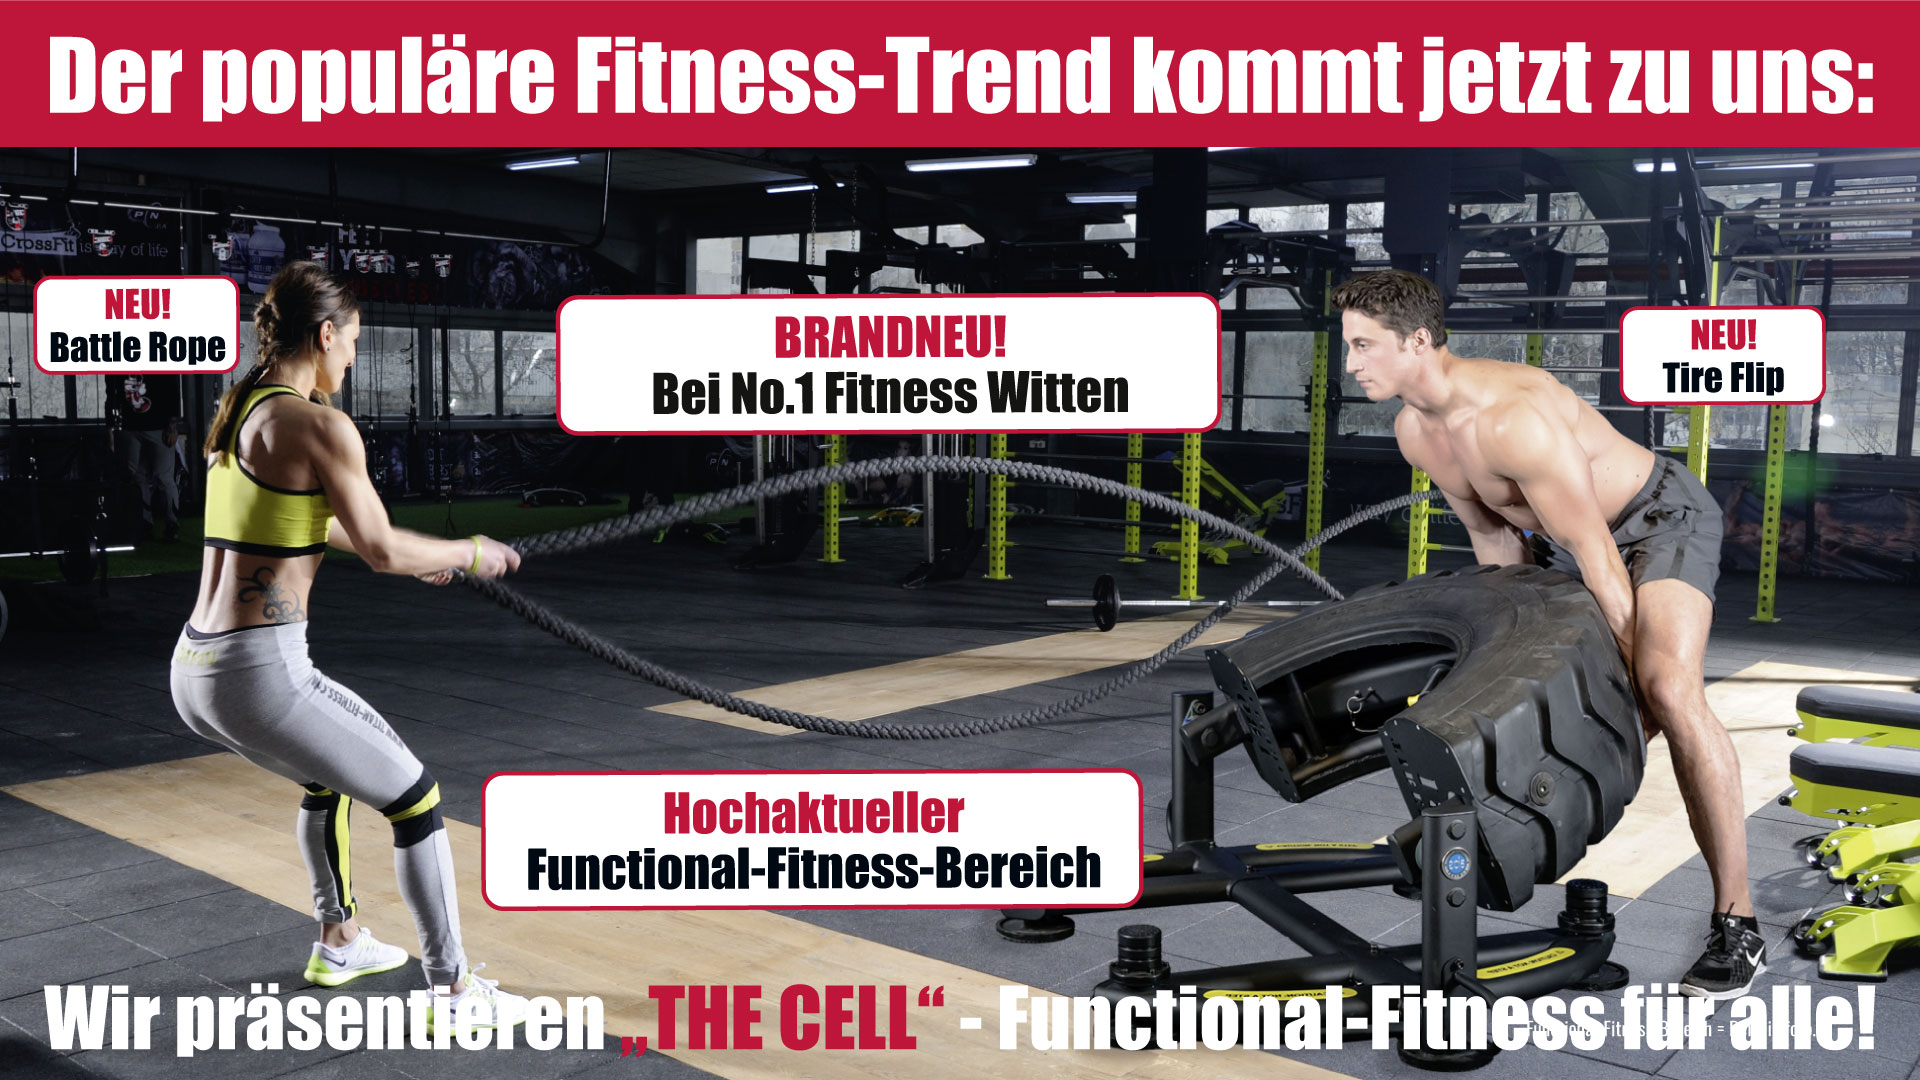 Functional Fitness Anzeige